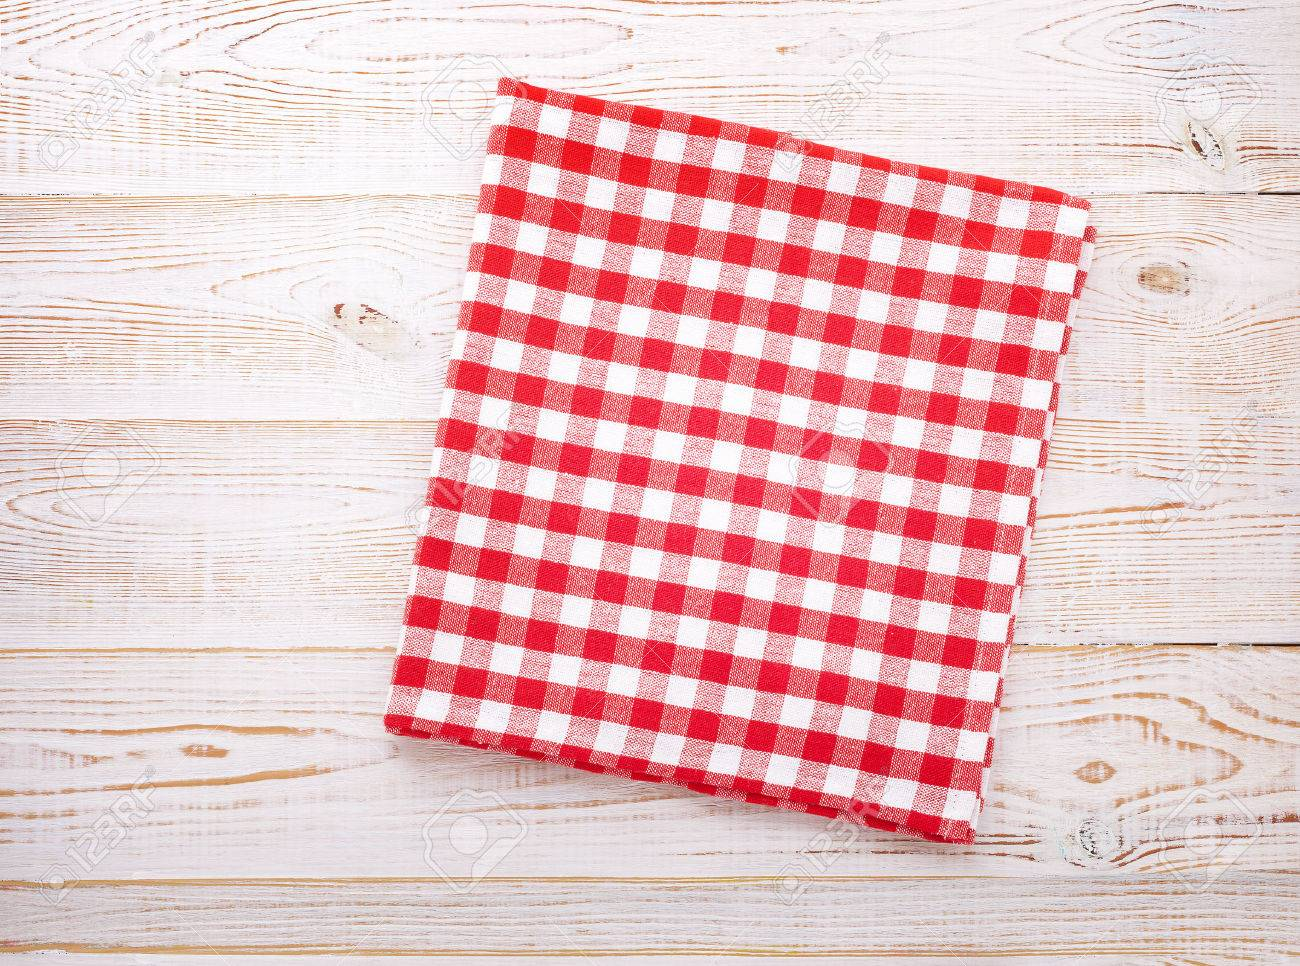 wooden kitchen table with empty red tablecloth for dinner view rh 123rf com kitchen tablecloths round kitchen tablecloth set